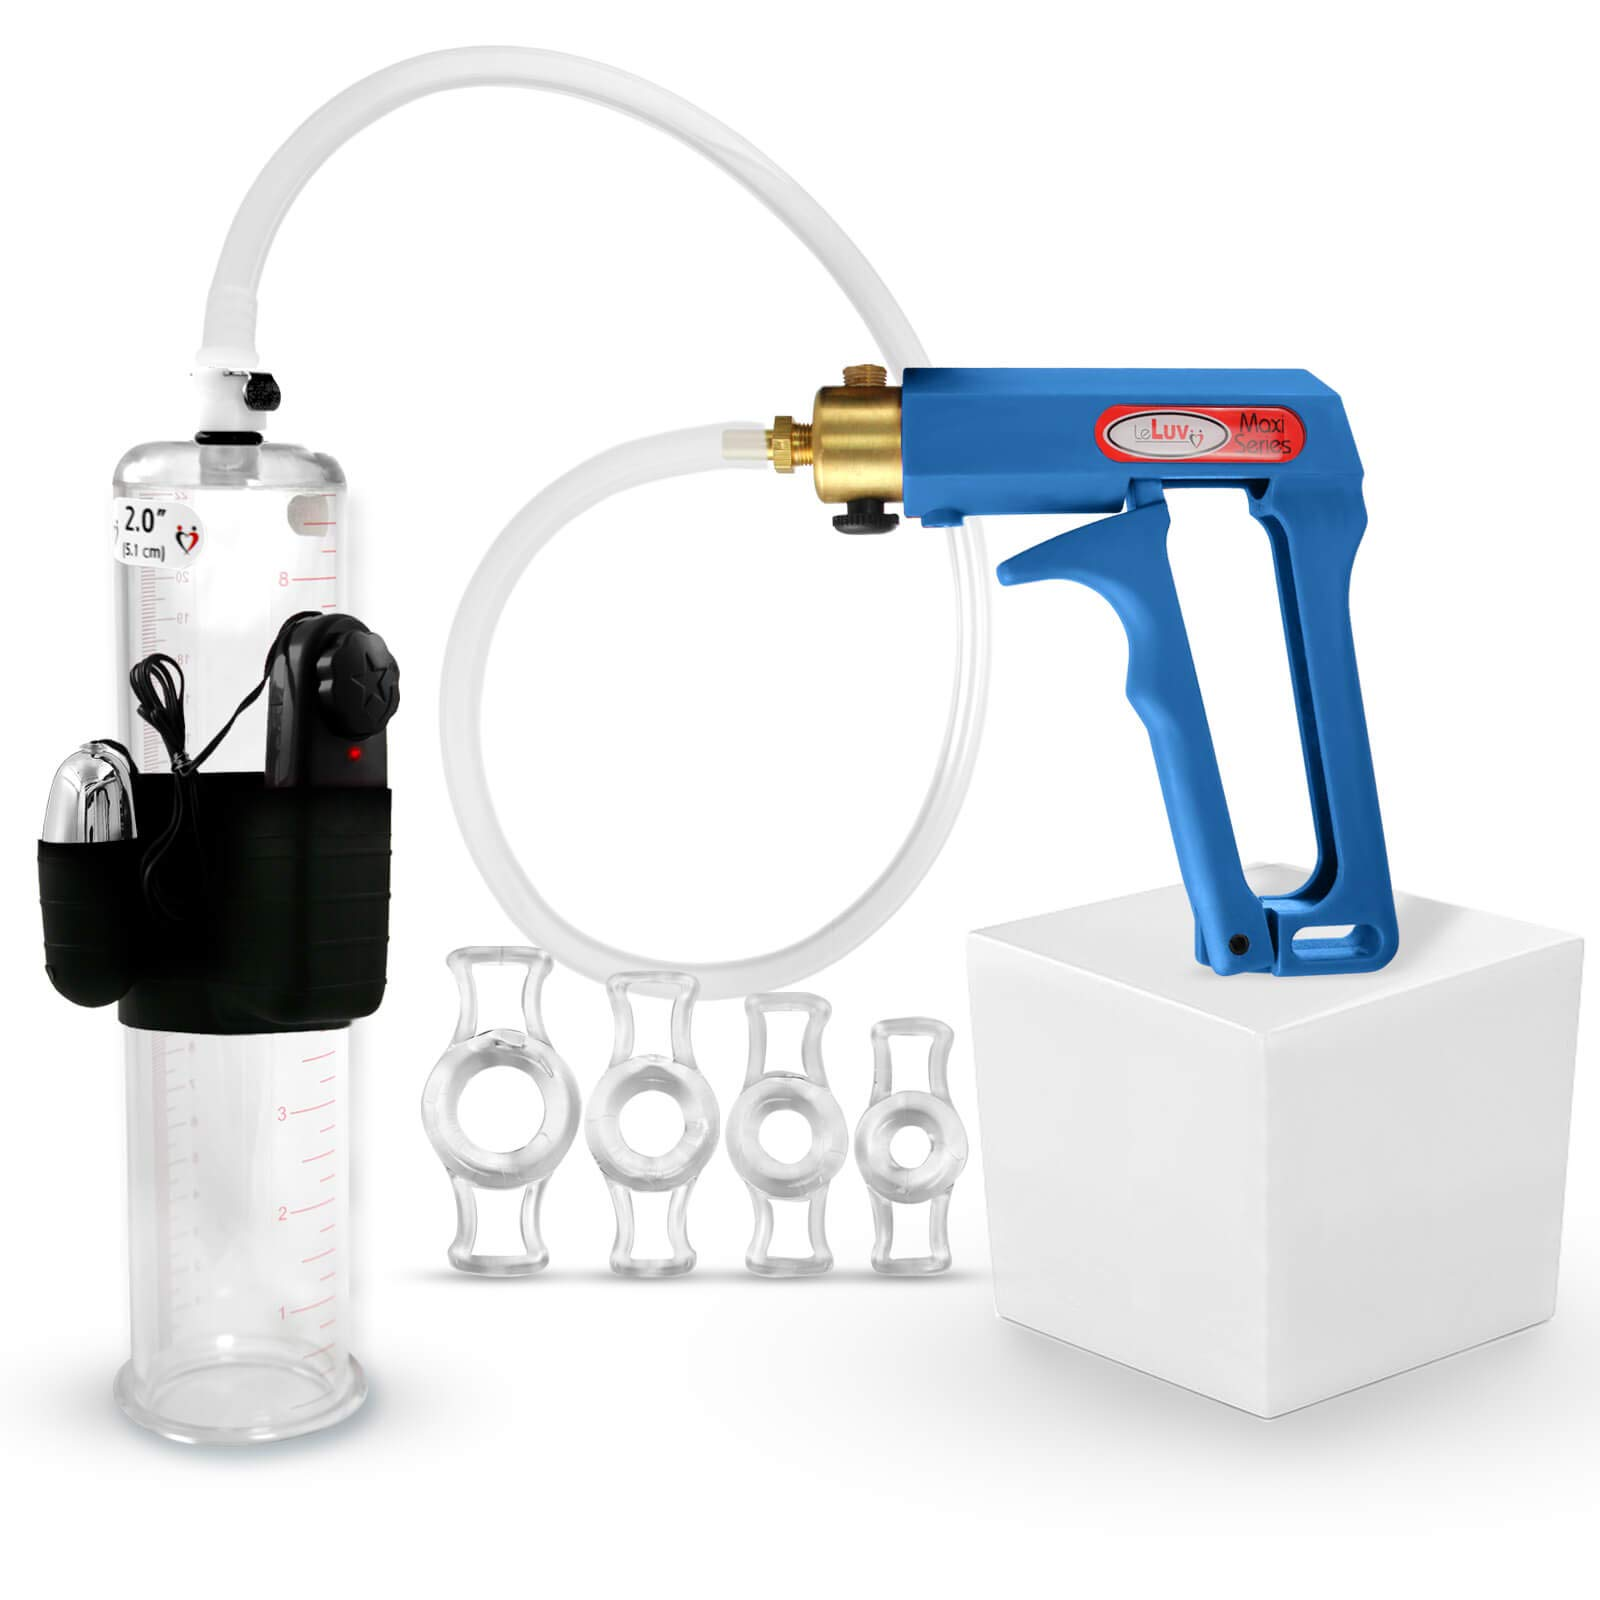 LeLuv Maxi Blue Vibrating Penis Pump Bundle with 4 Sizes of Constriction Rings 9 inch x 2 inch Cylinder